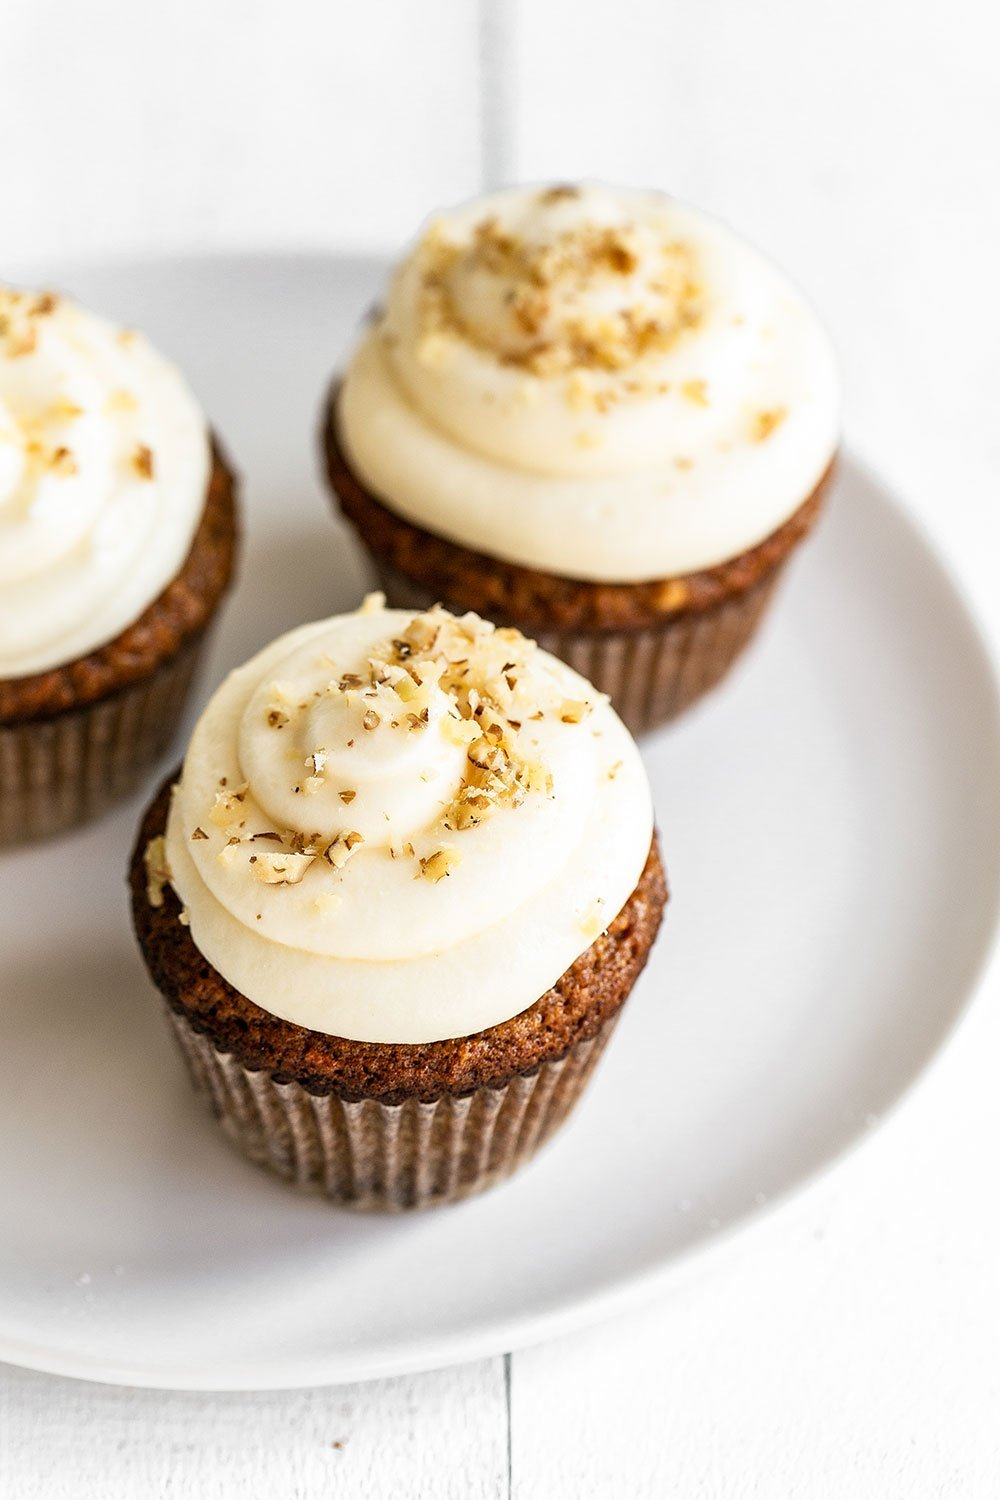 Carrot cupcakes on a plate garnished with chopped walnuts